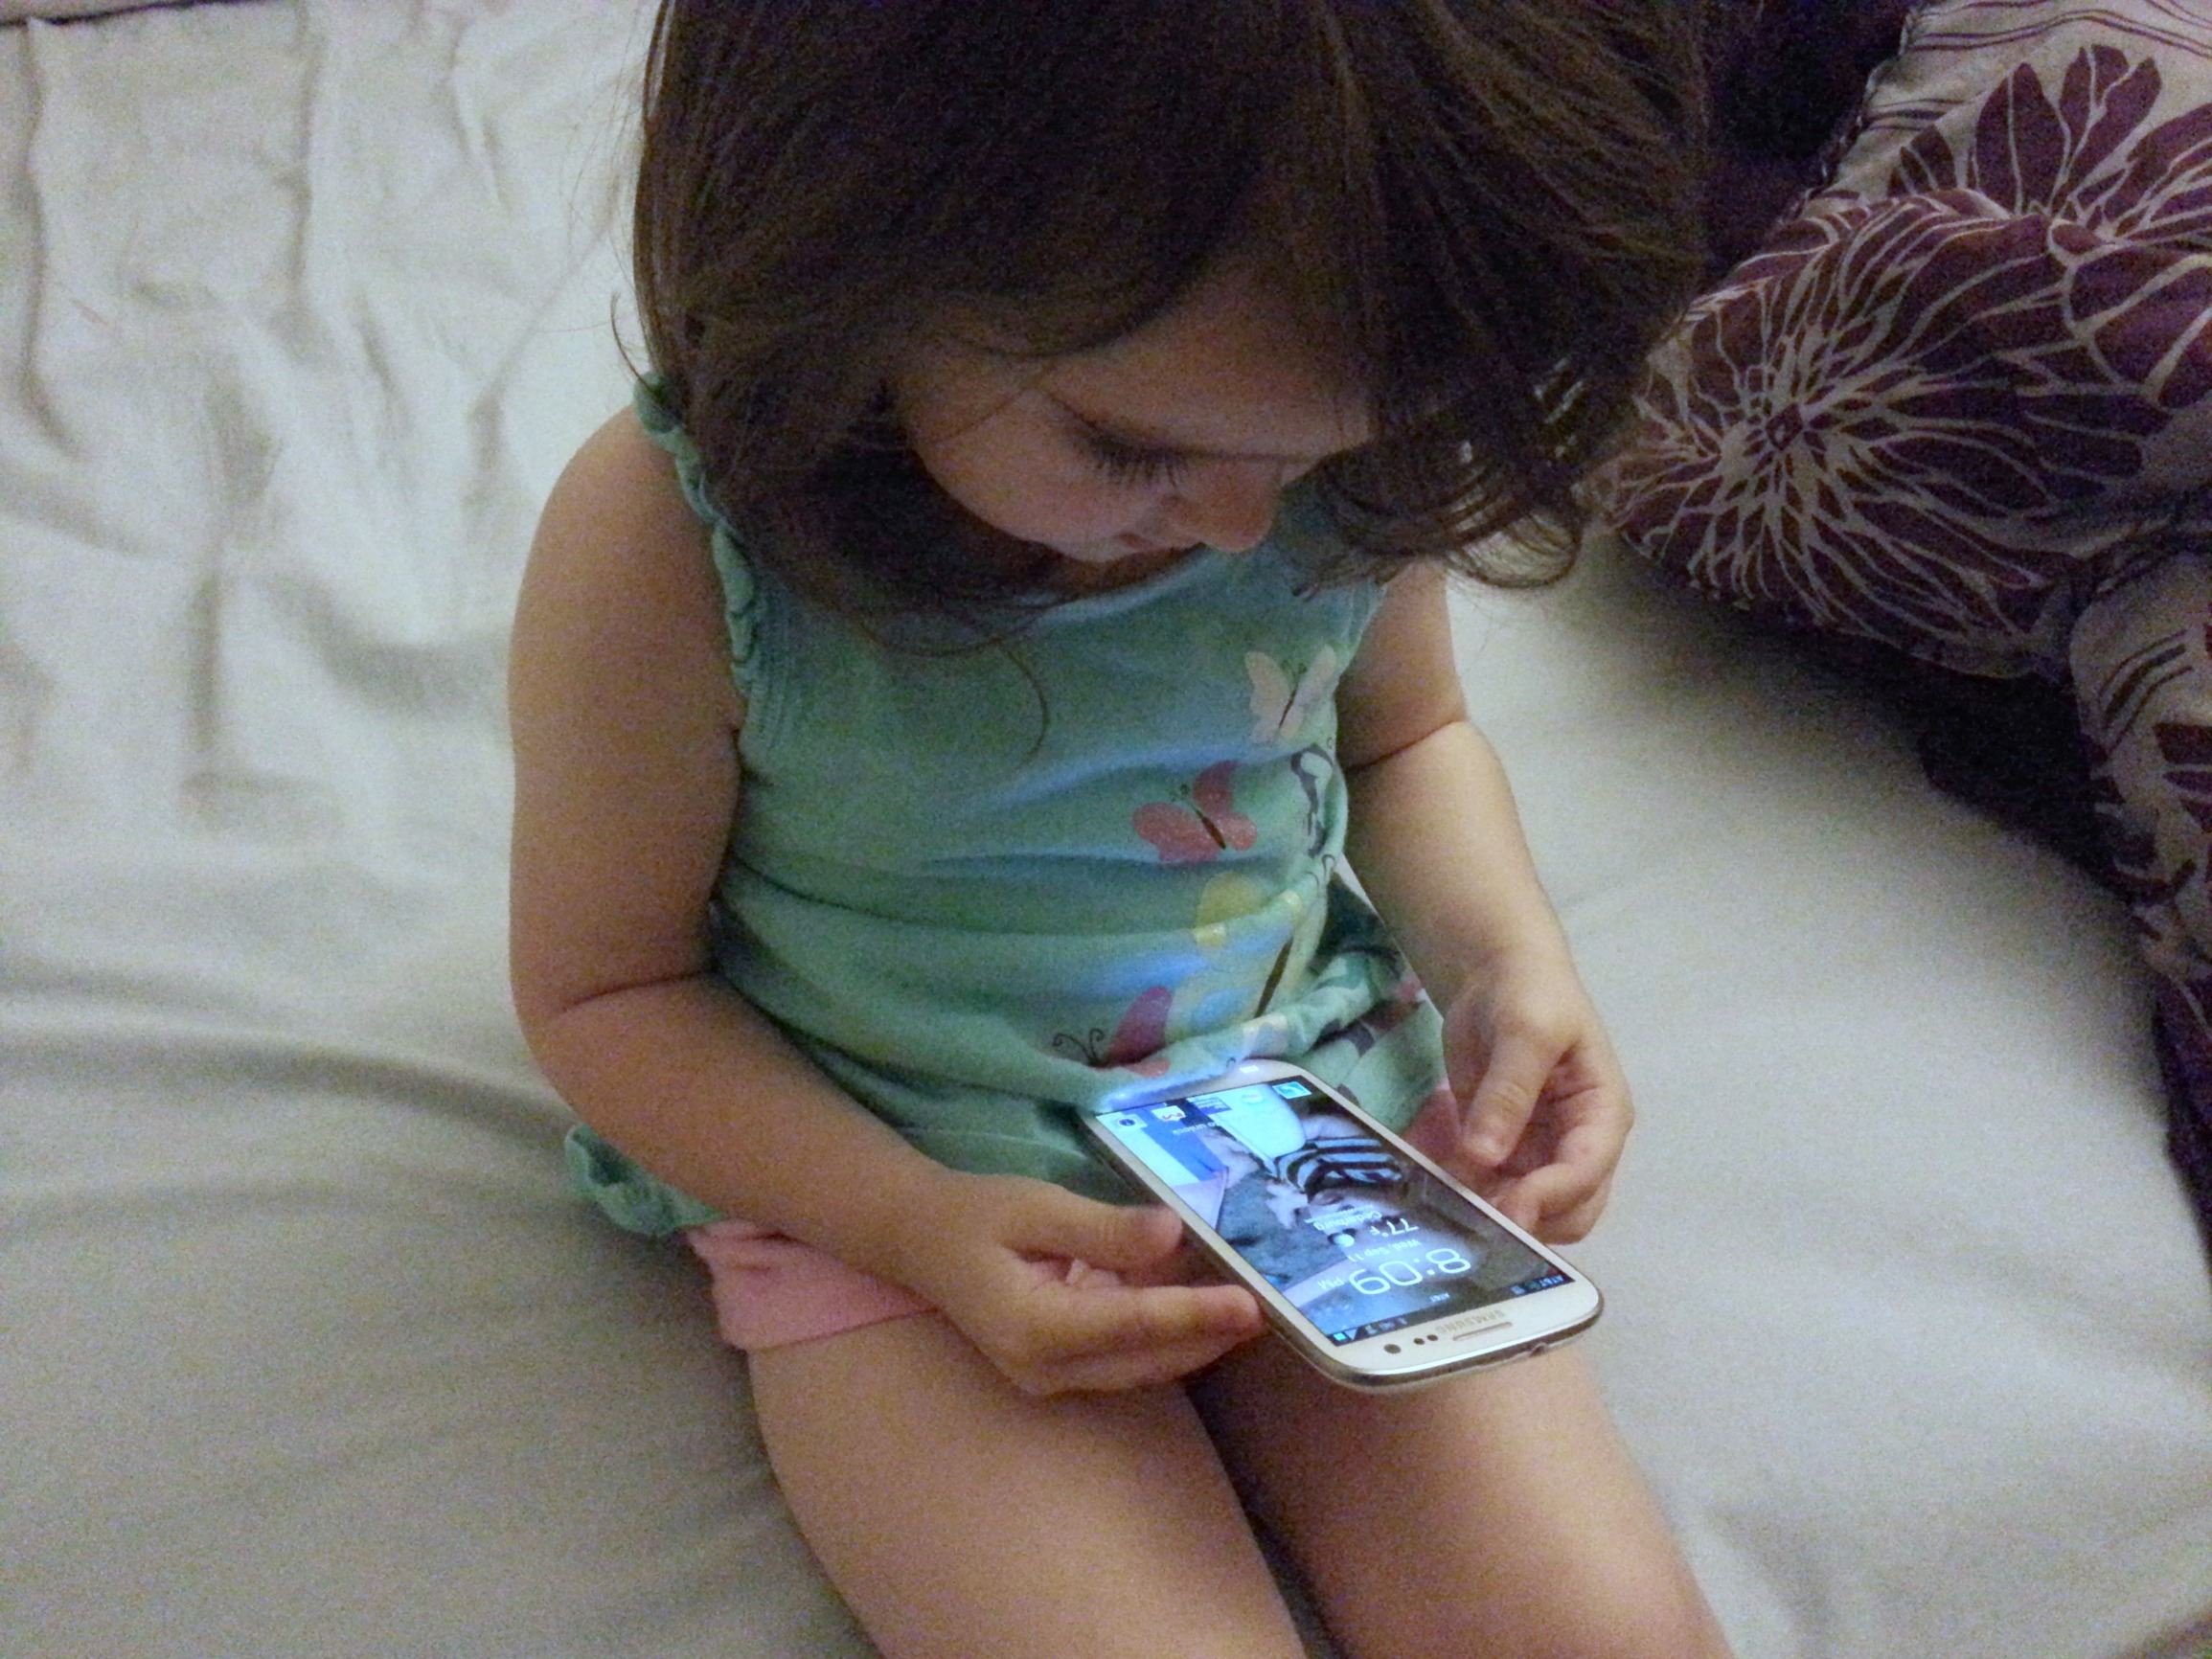 toddler with smartphone